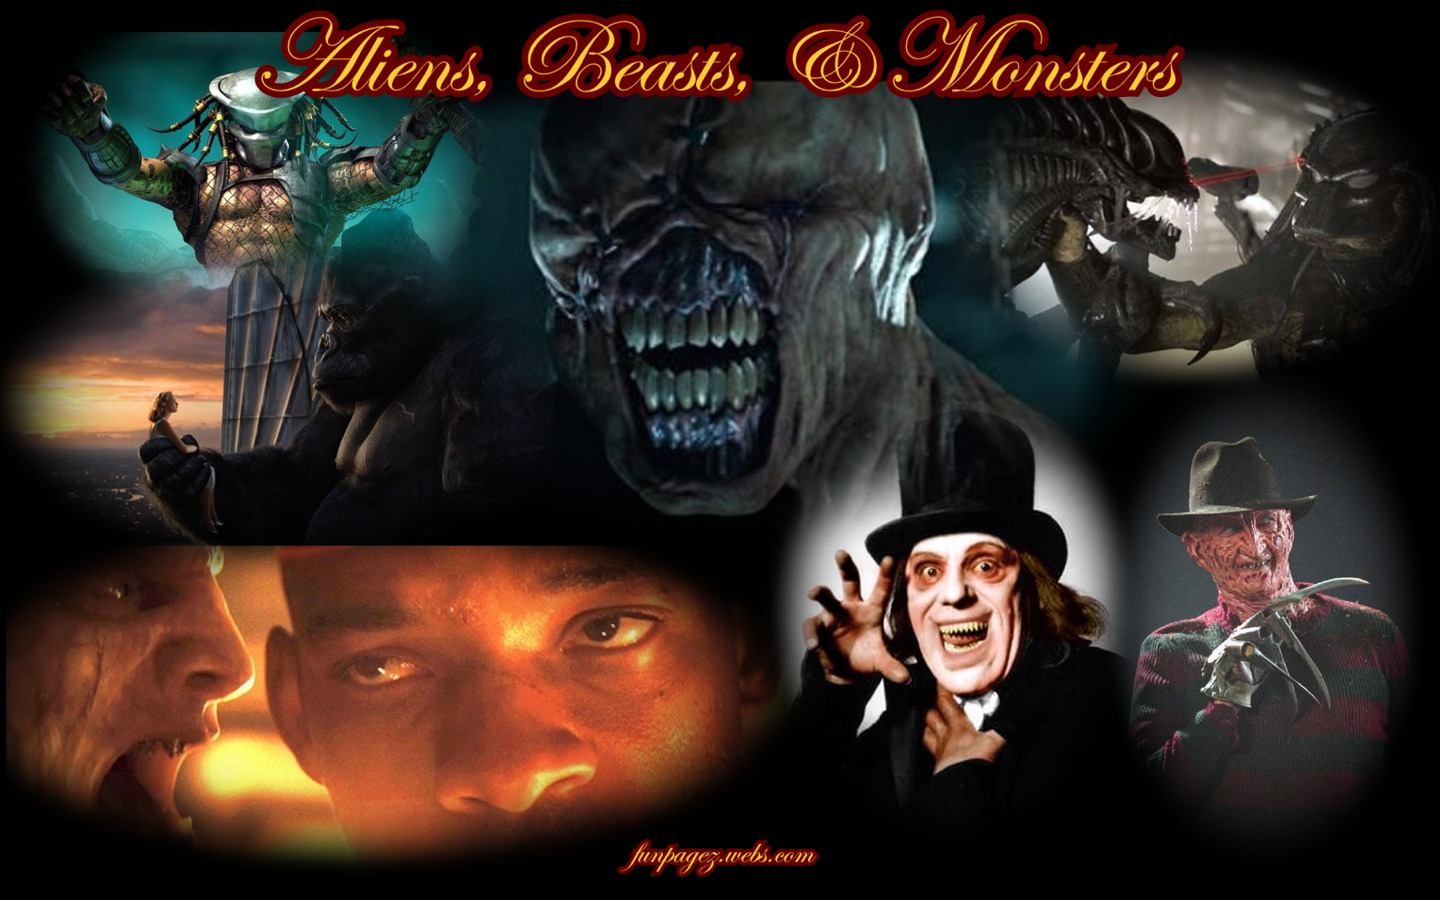 Classic Monsters Wallpaper wallpapers for your 1440x900